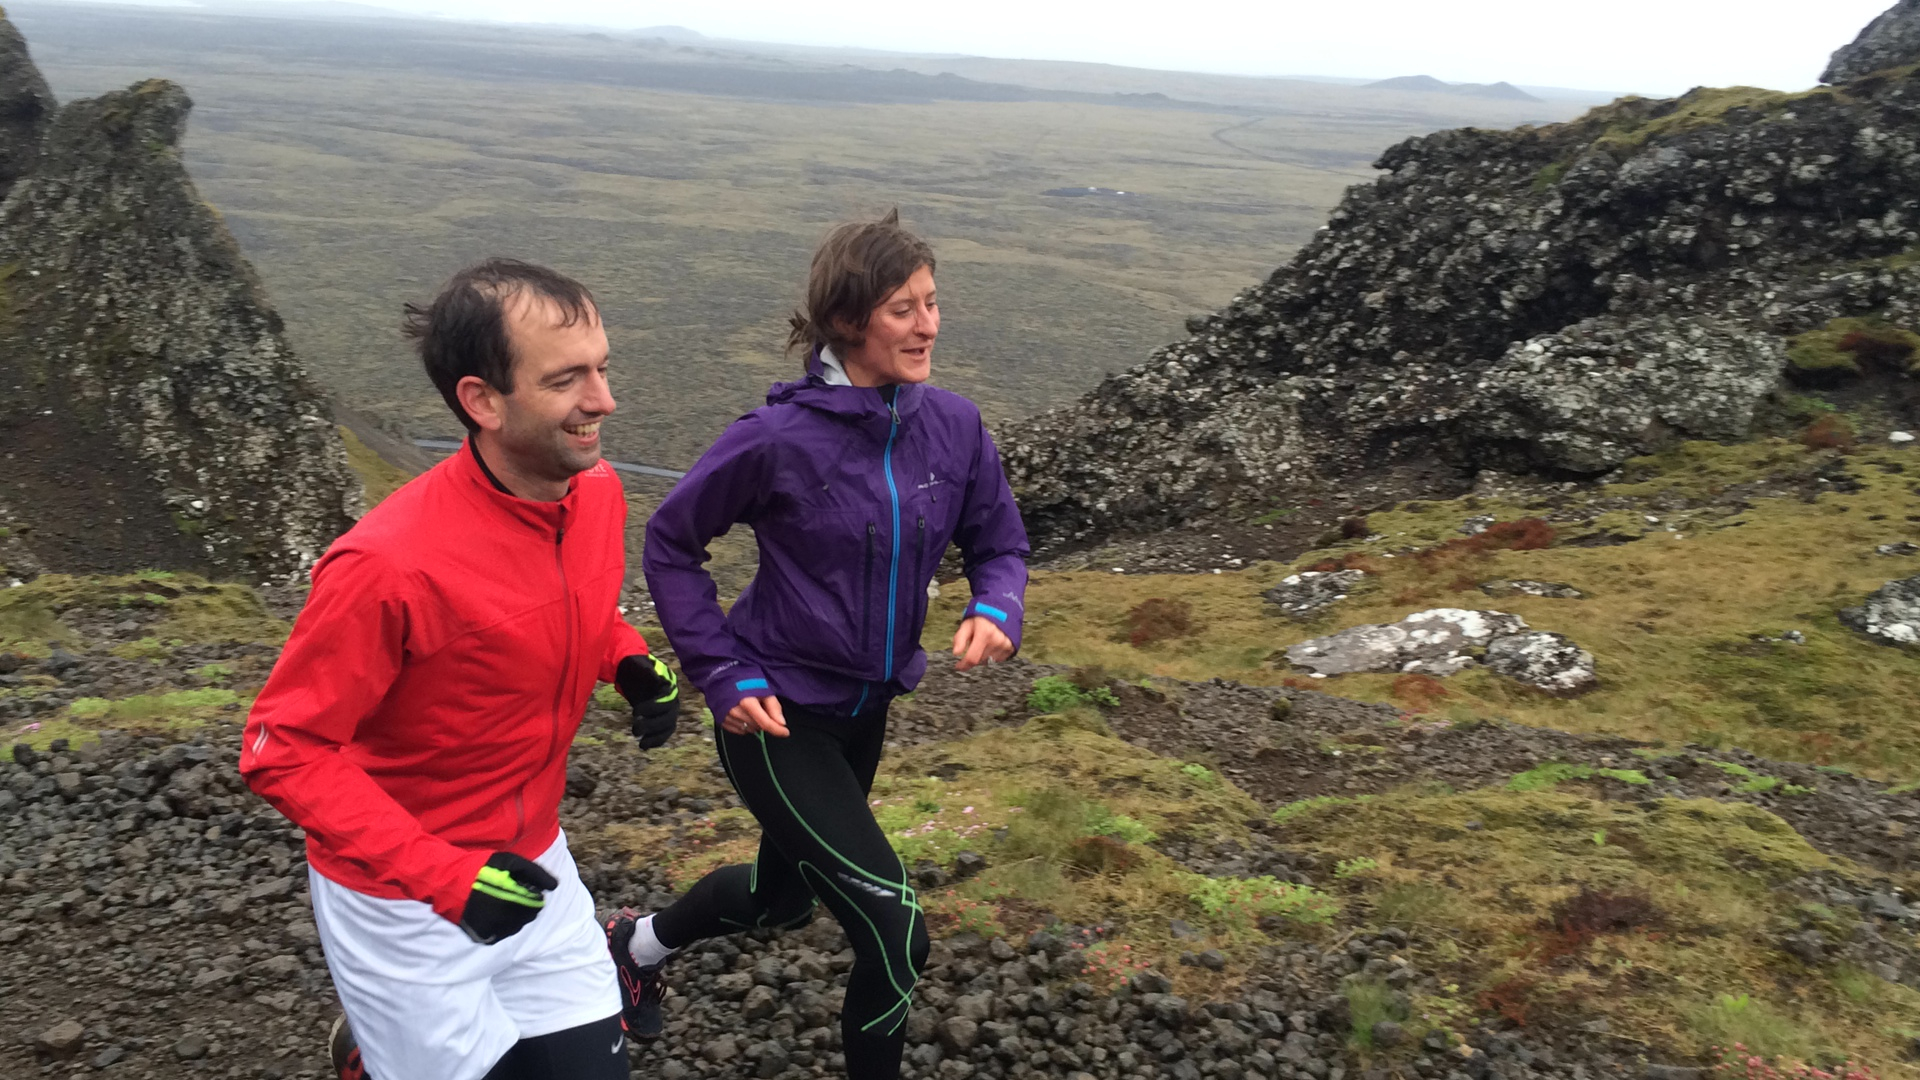 Iceland adventure running retreat   Absolutely worth it!